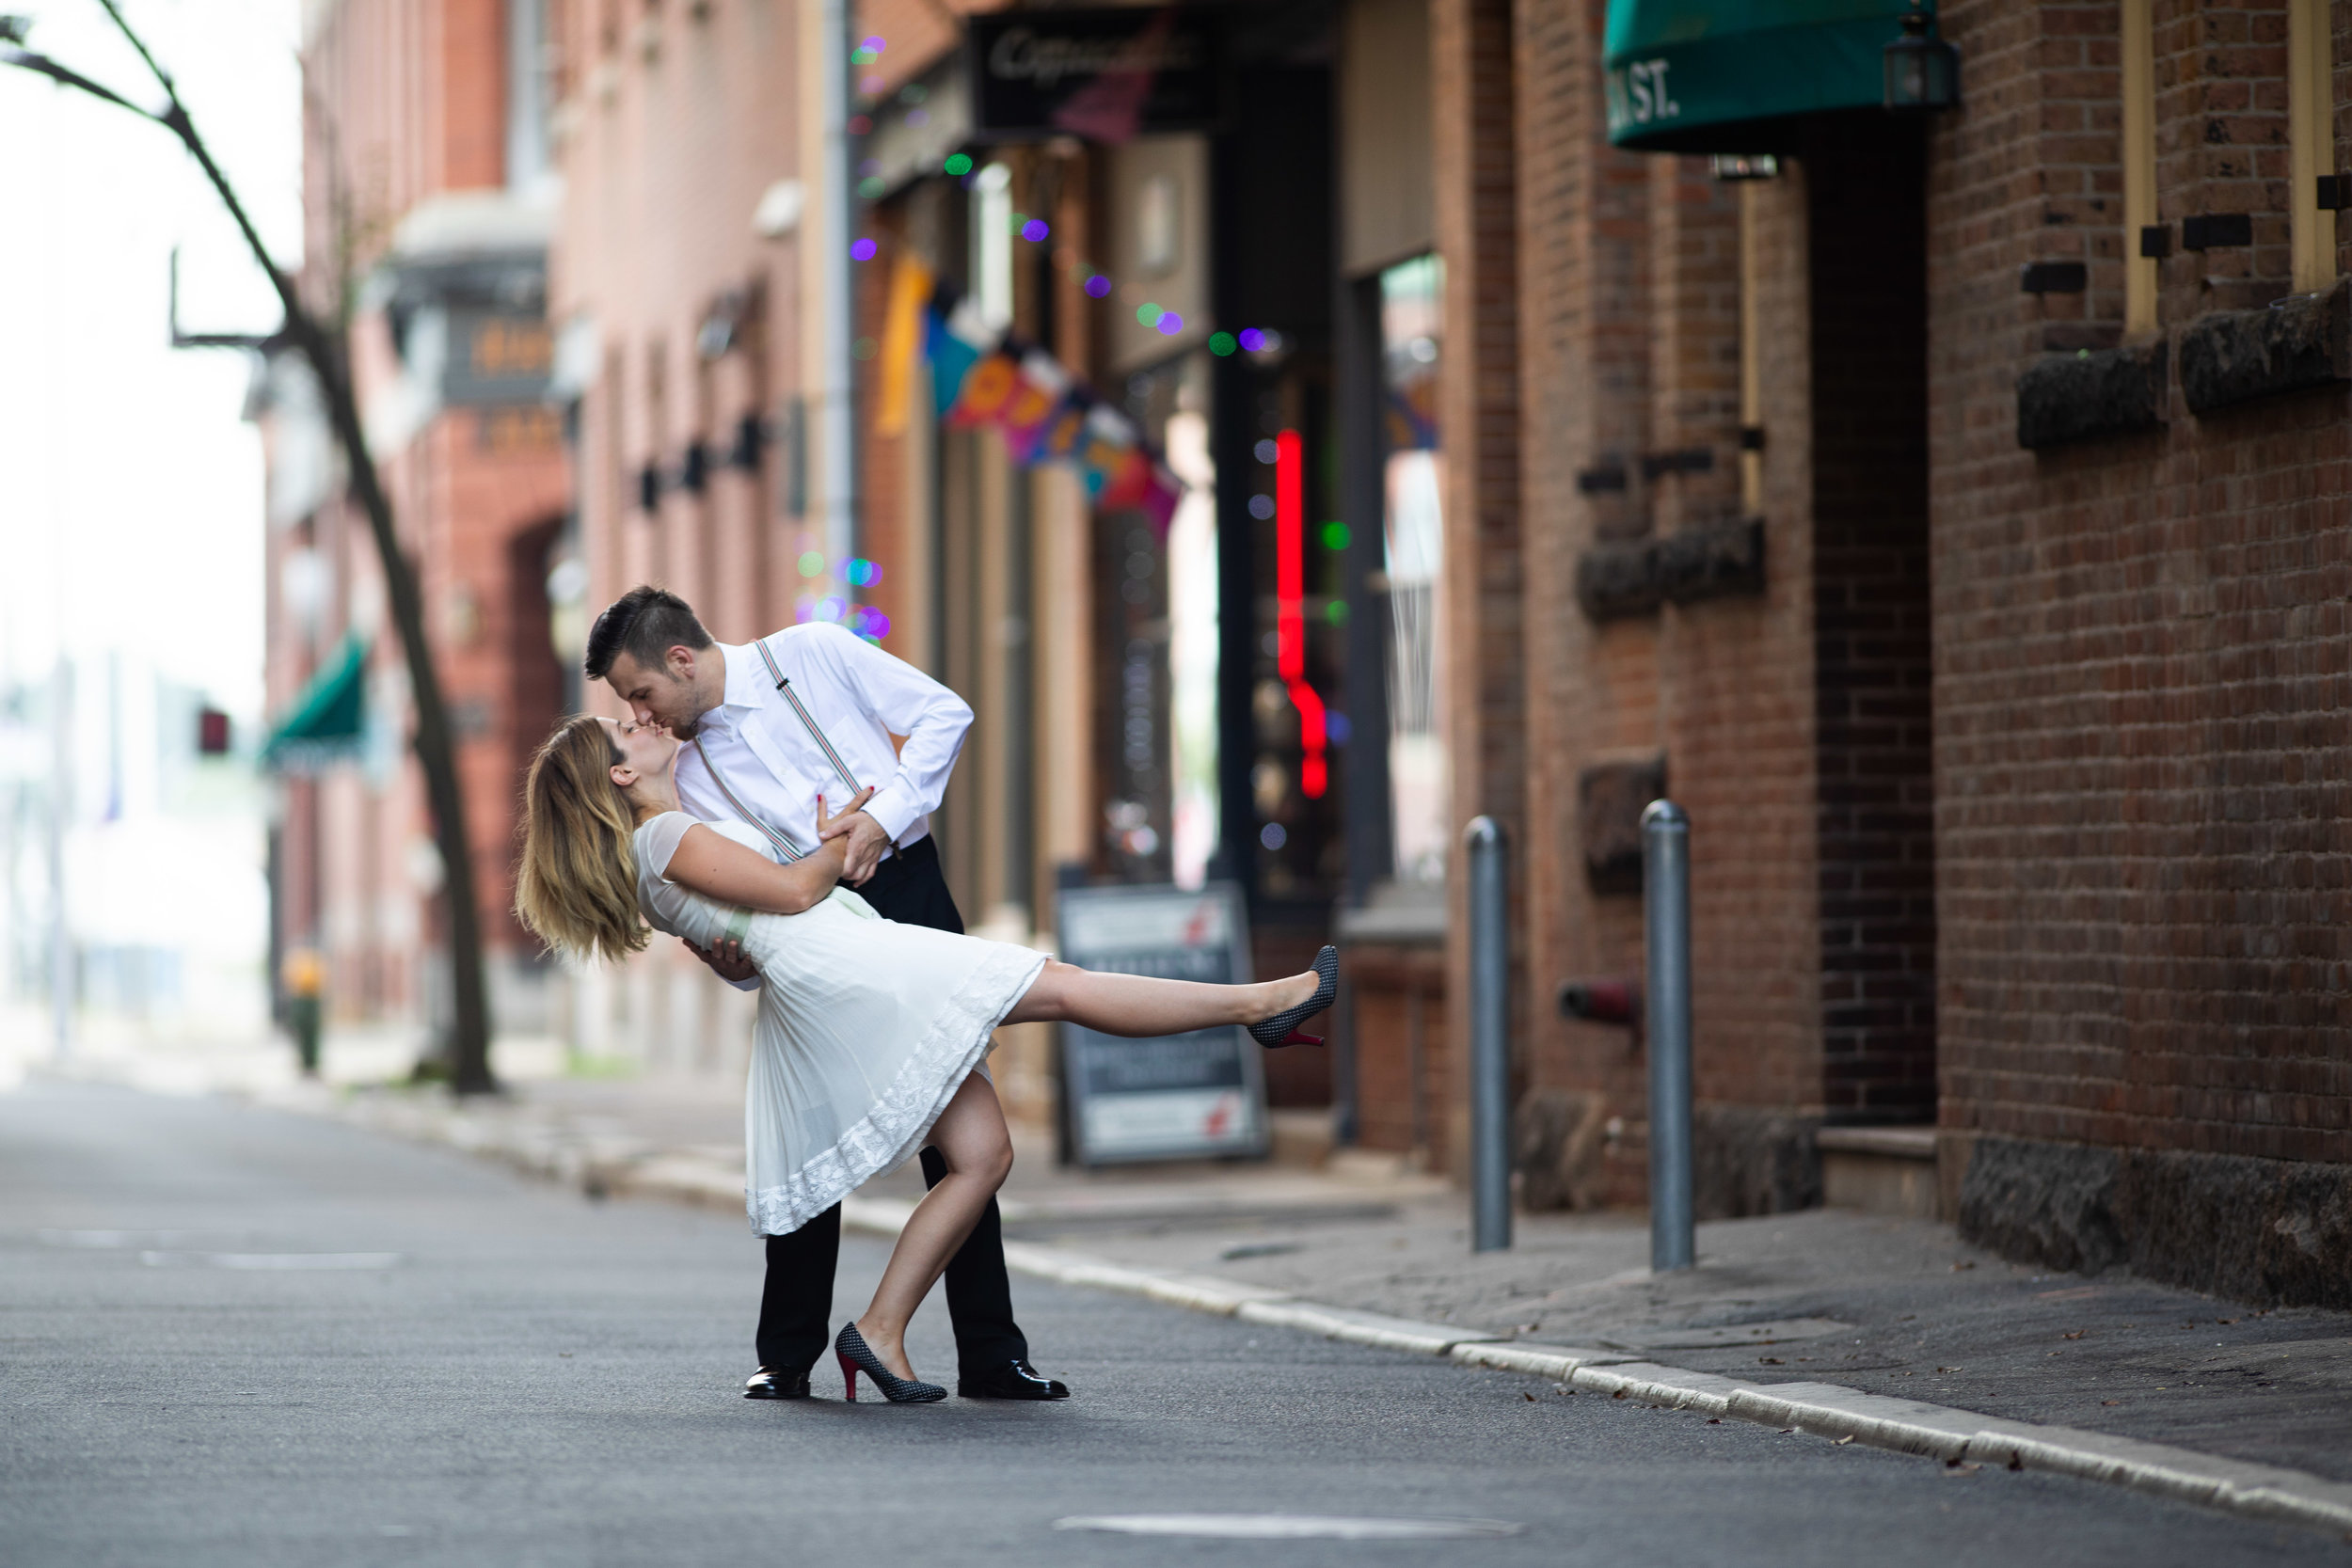 THIS IS AN ENGAGEMENT SESSION I DID IN DOWNTOWN PROVIDENCE, RHODE ISLAND WITH AN UPCOMING WEDDING. THE ENGAGEMENT SESSION IS A REALLY GREAT TIME TO HANG WITH THE BRIDAL COUPLE.